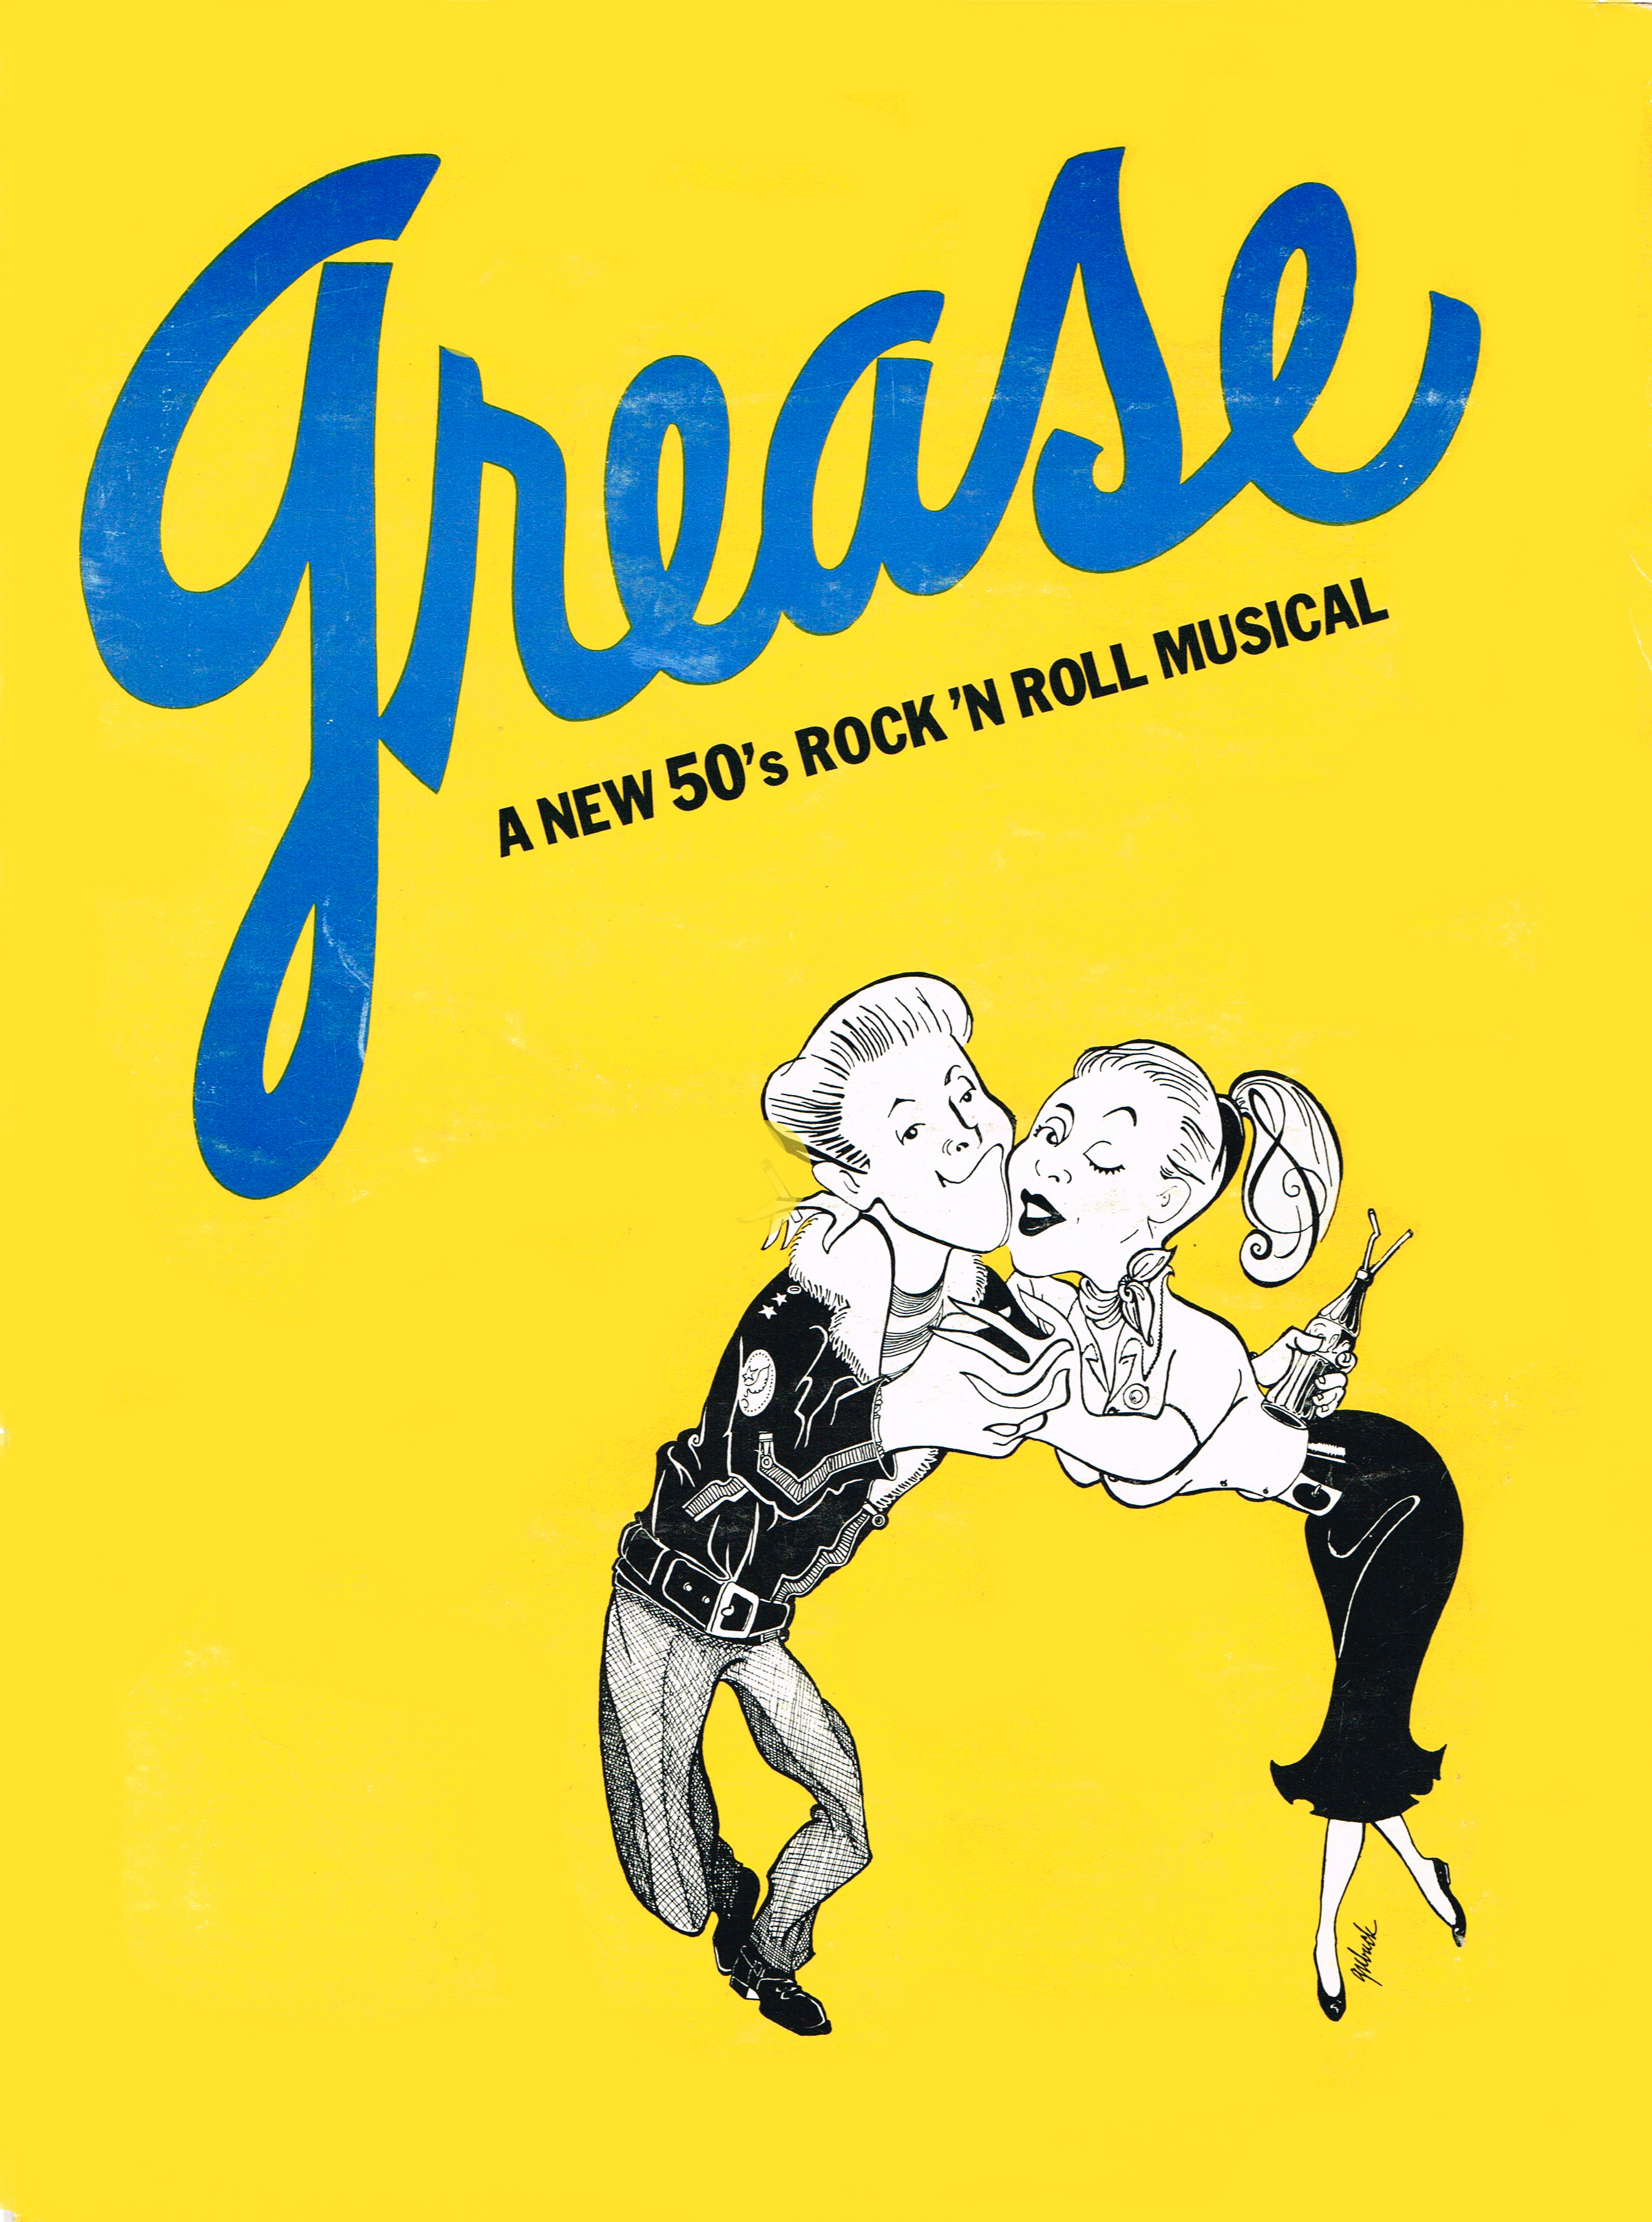 Musical clipart grease Grease PAUL BOP SHU cover